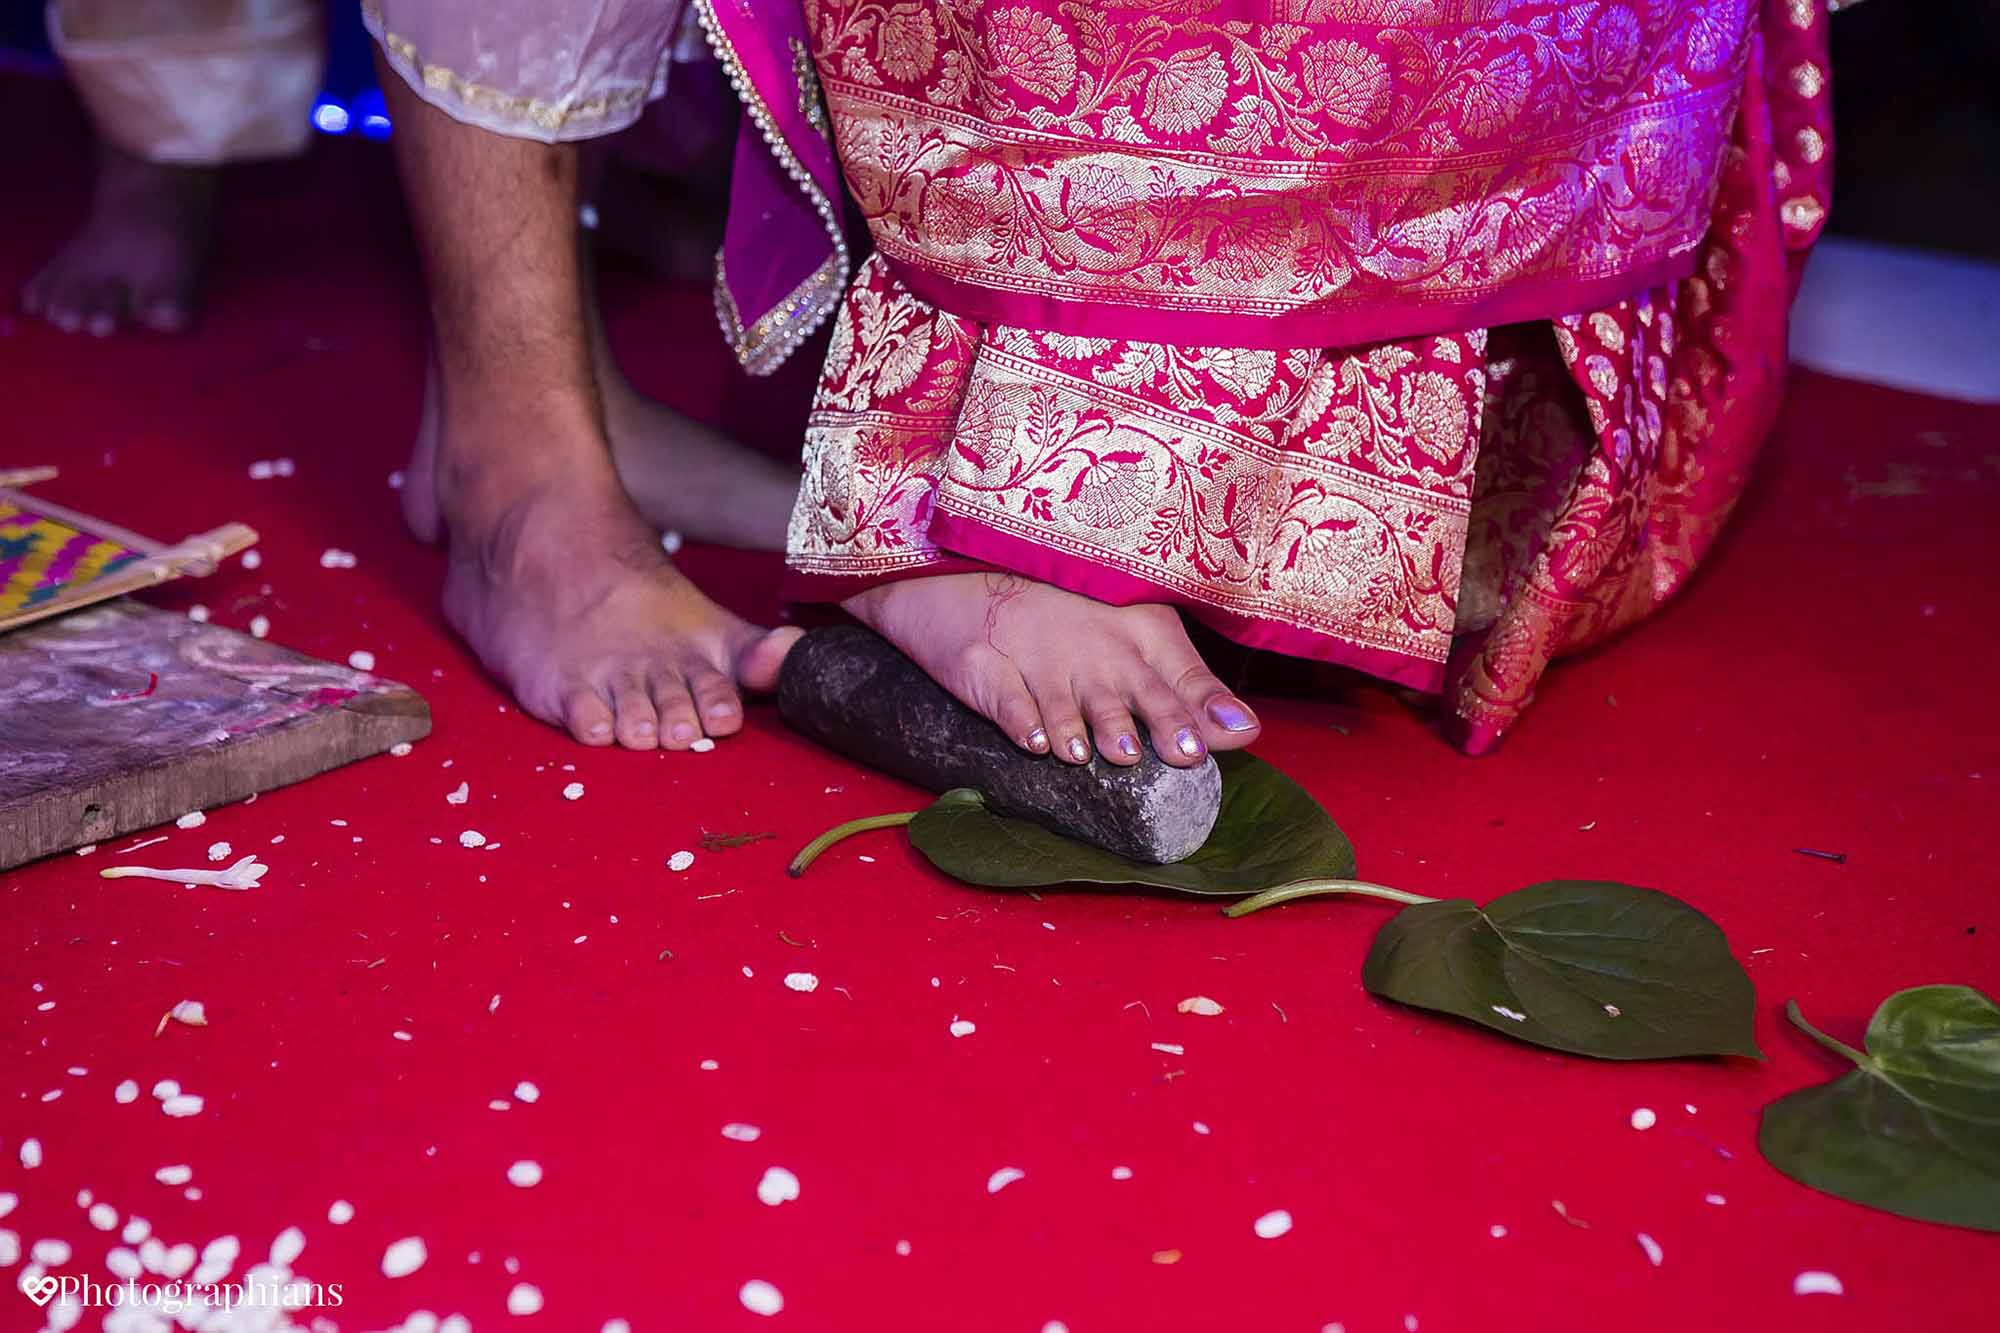 Bengali_Wedding_Photography_Kolkata_Photographians_145